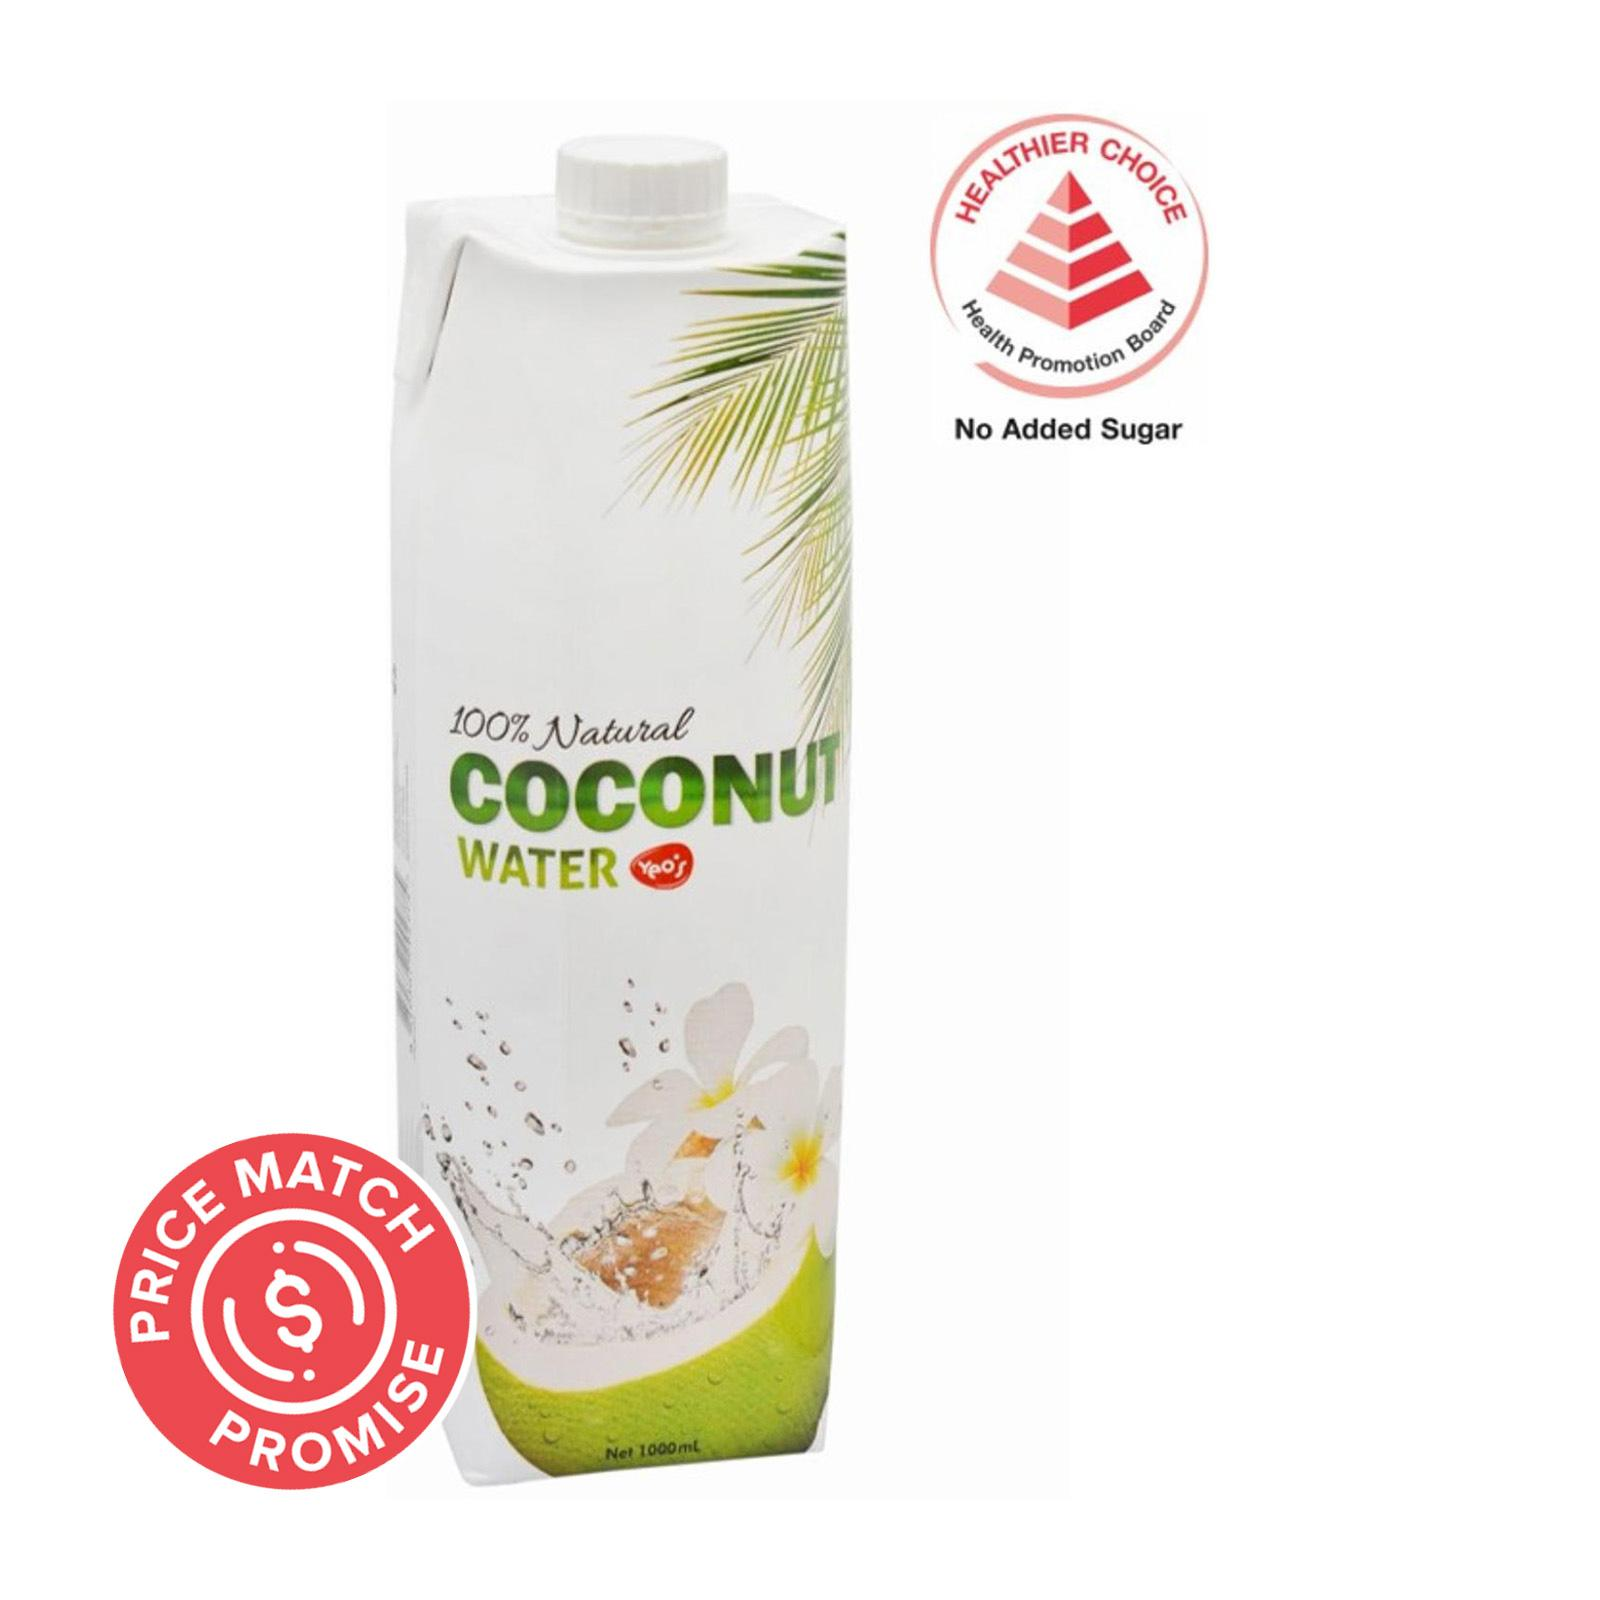 YEO'S 100% Natural Coconut Water 1L